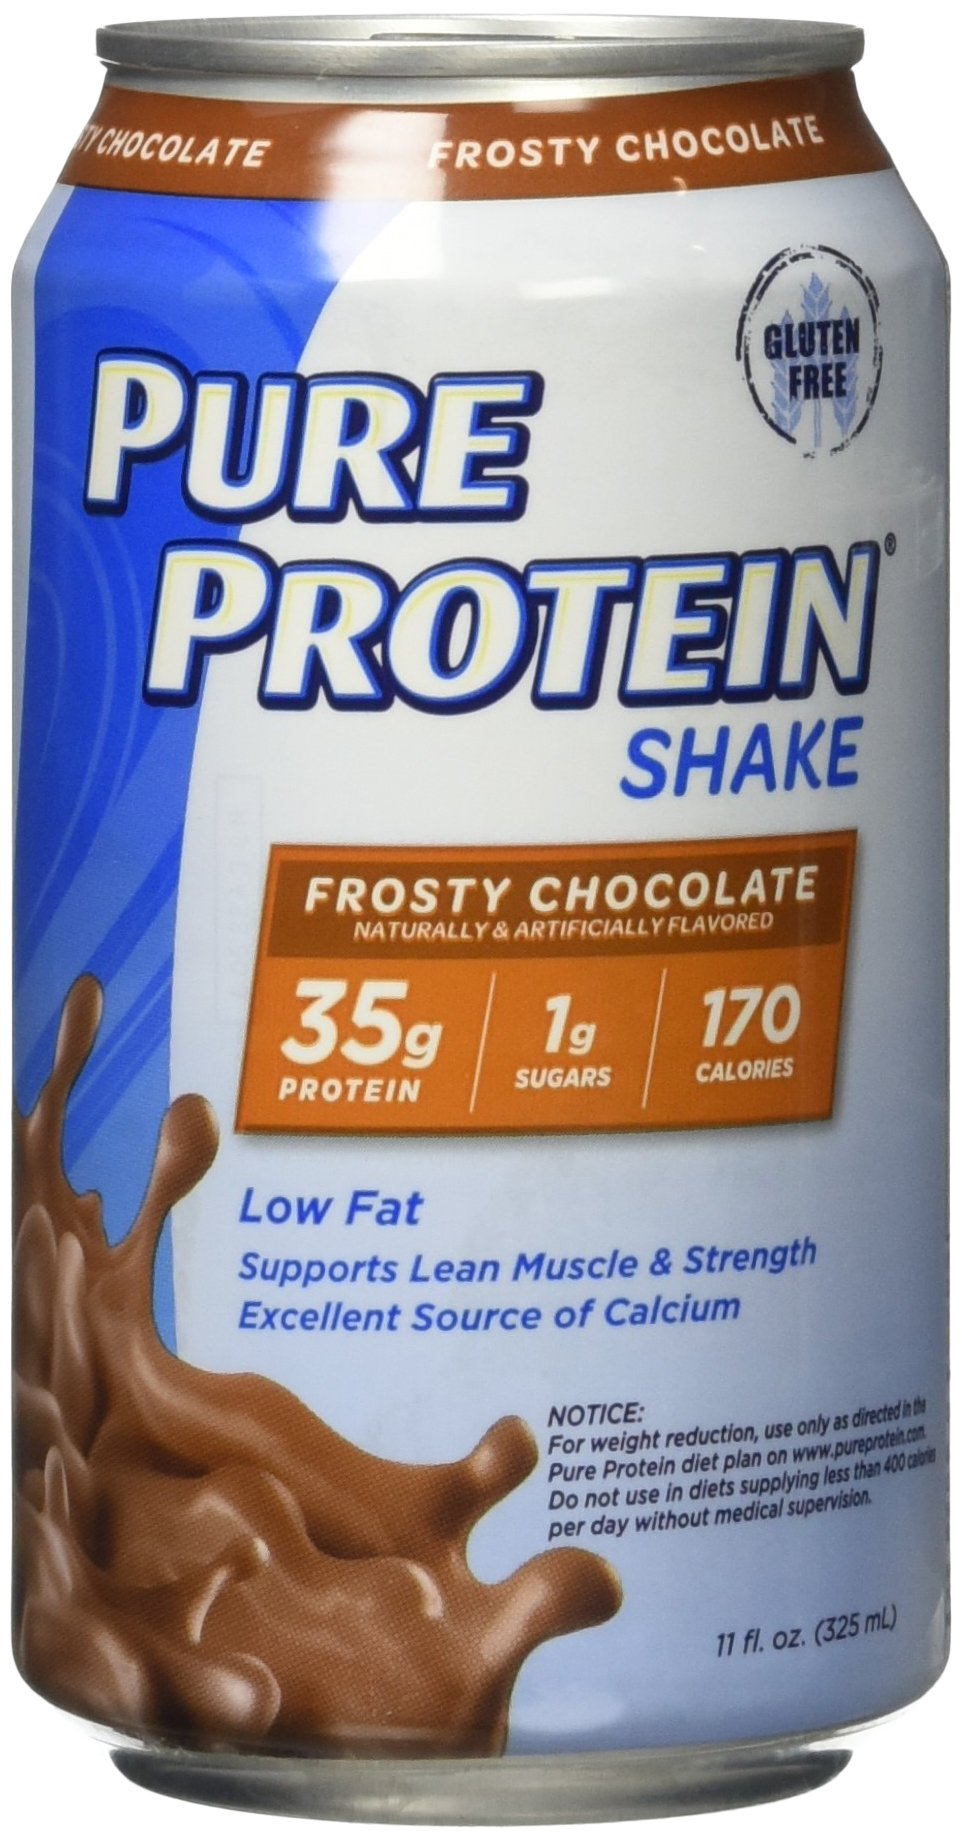 Pure Protein Shake Frosty Chocolate Protein Shakes 35 Grams of Protein per Shake Excellent Source of Calcium 12-11-Ounce Cans